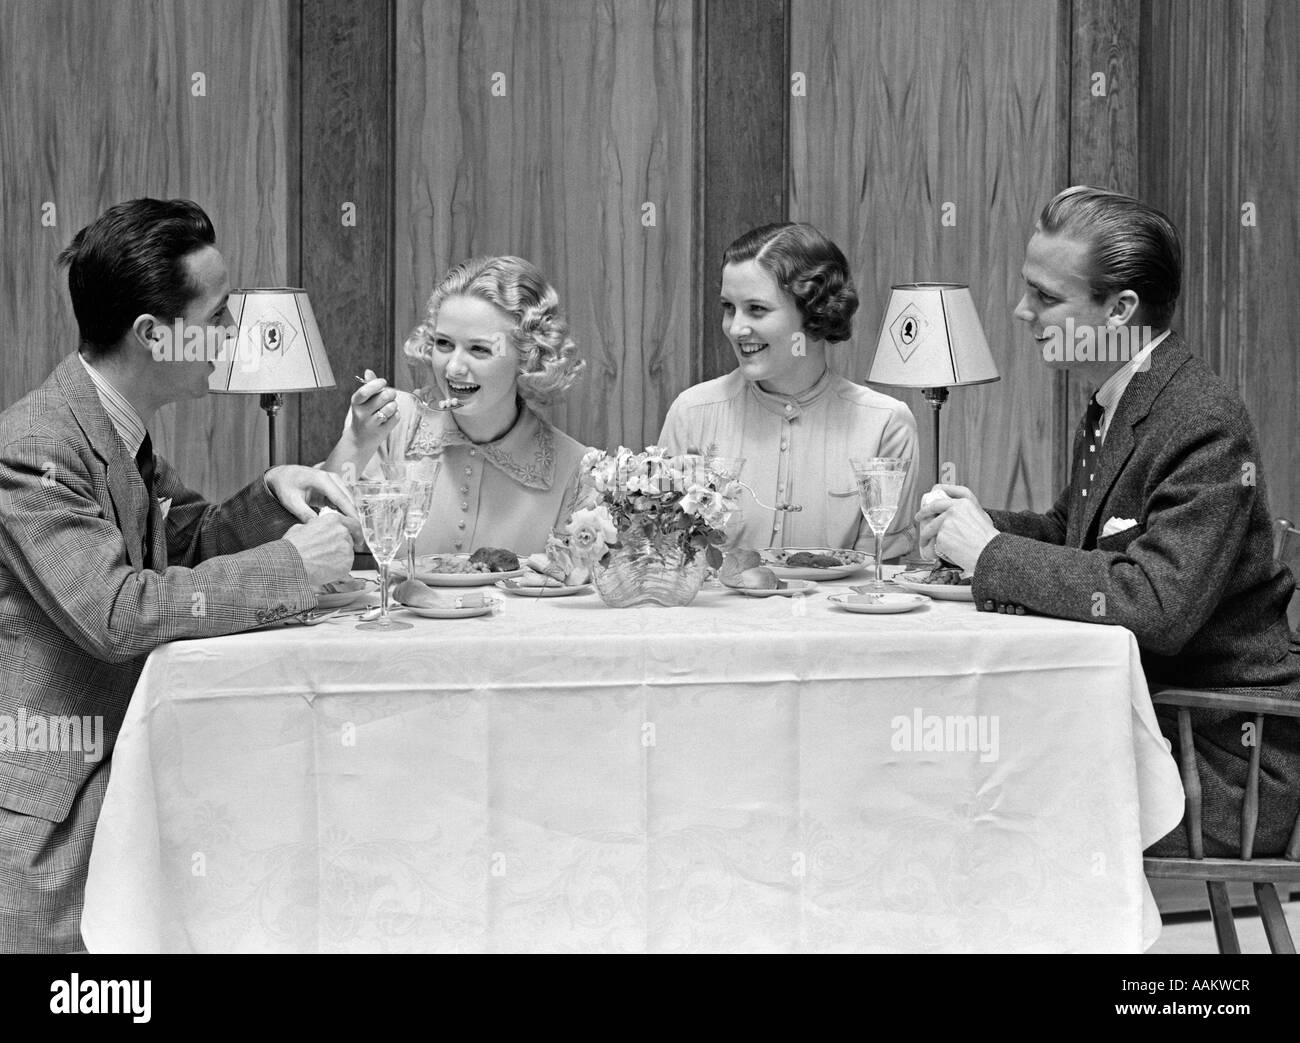 1930s 1940s TWO COUPLES DINING AT RESTAURANT TABLE - Stock Image